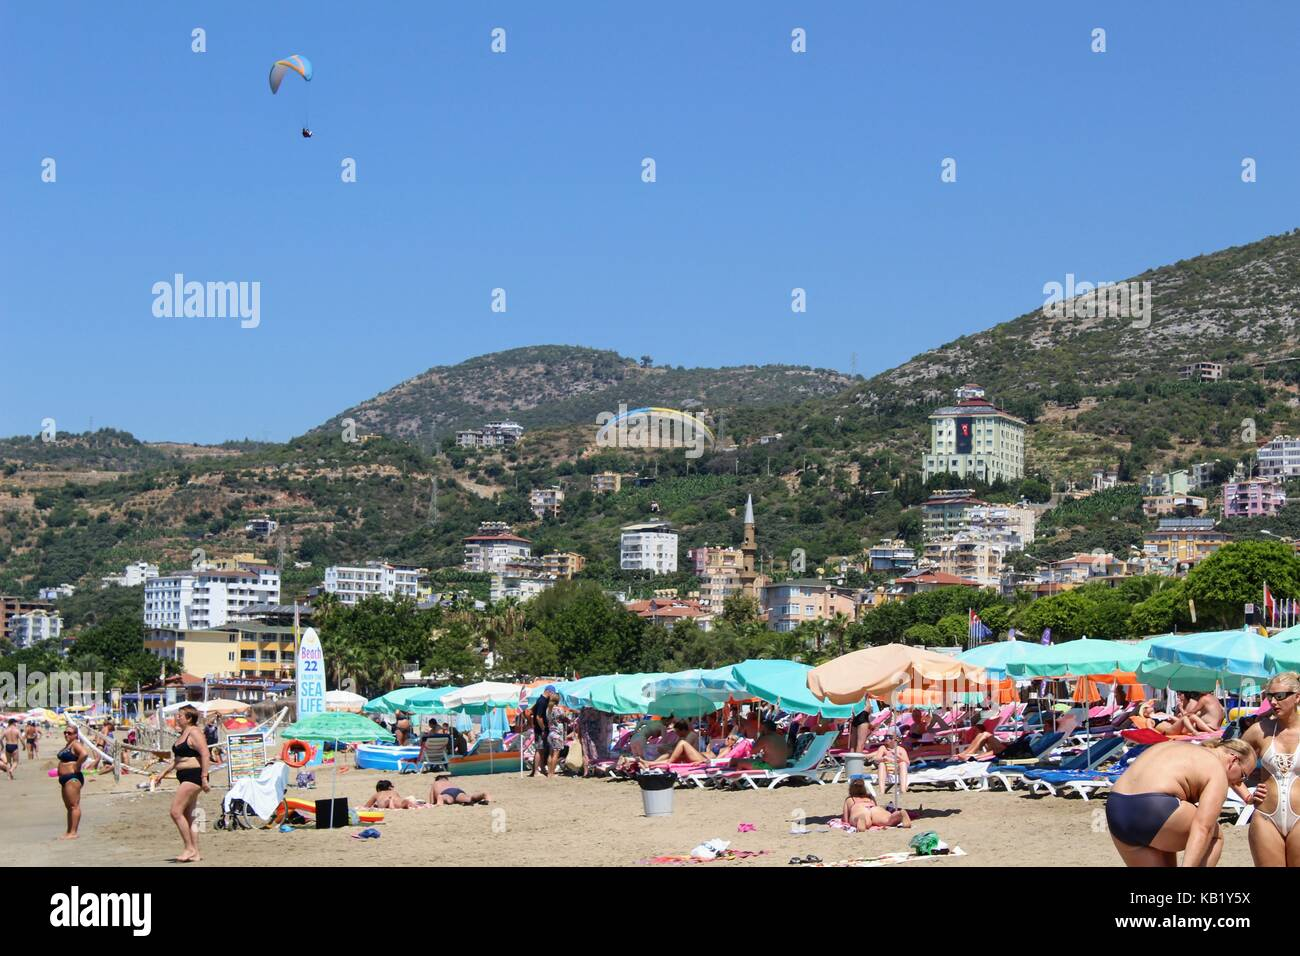 July, 2017 - Vacationers bathe in the sea and sunbathe in the sun on Cleopatra Beach (Alanya, Turkey). - Stock Image